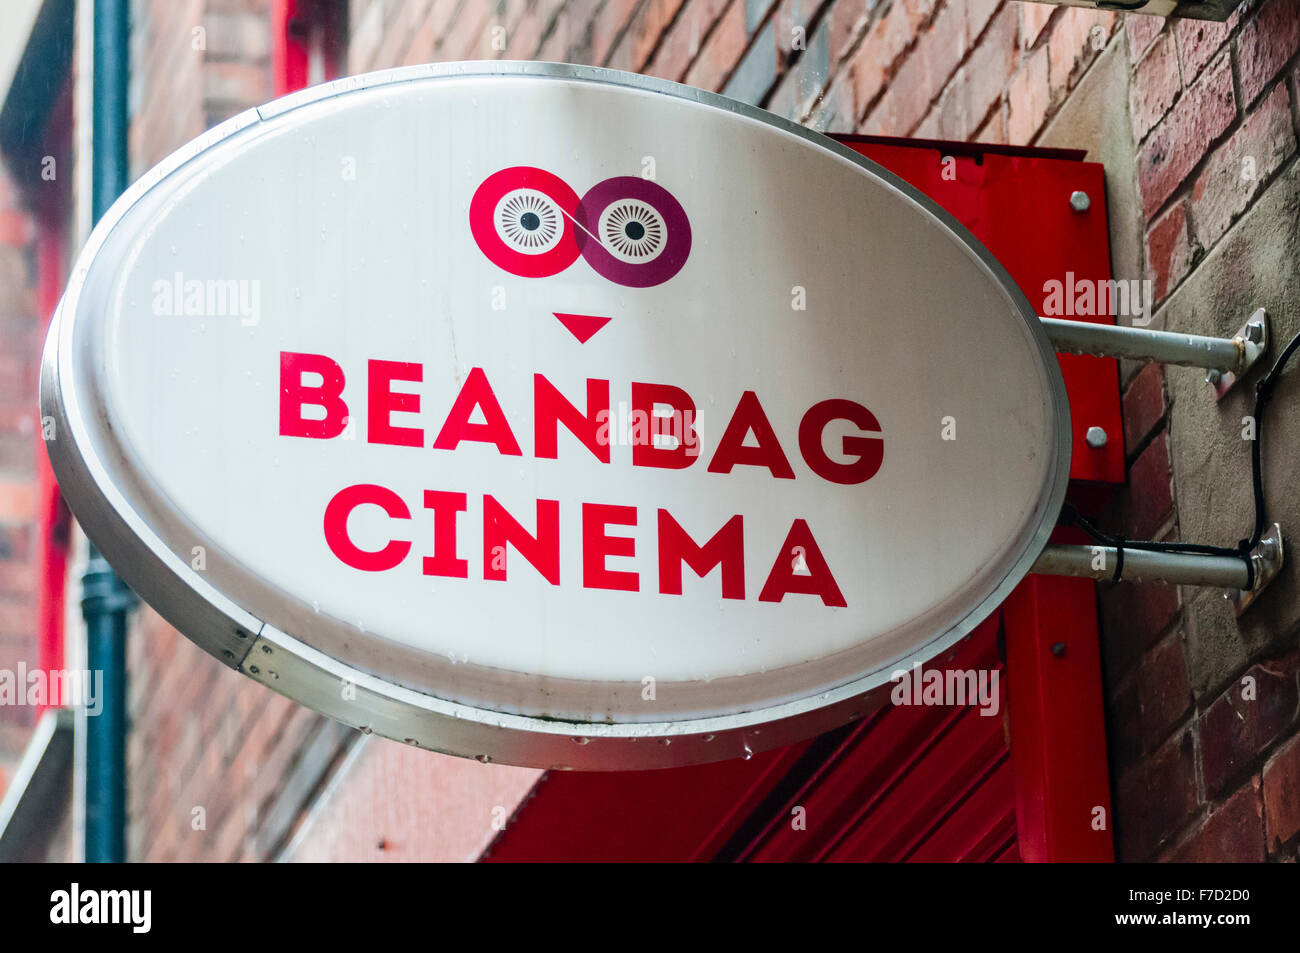 Sign for a 'Beanbag Cinema', a relaxed cinema showing films while customers relax on beanbags. - Stock Image